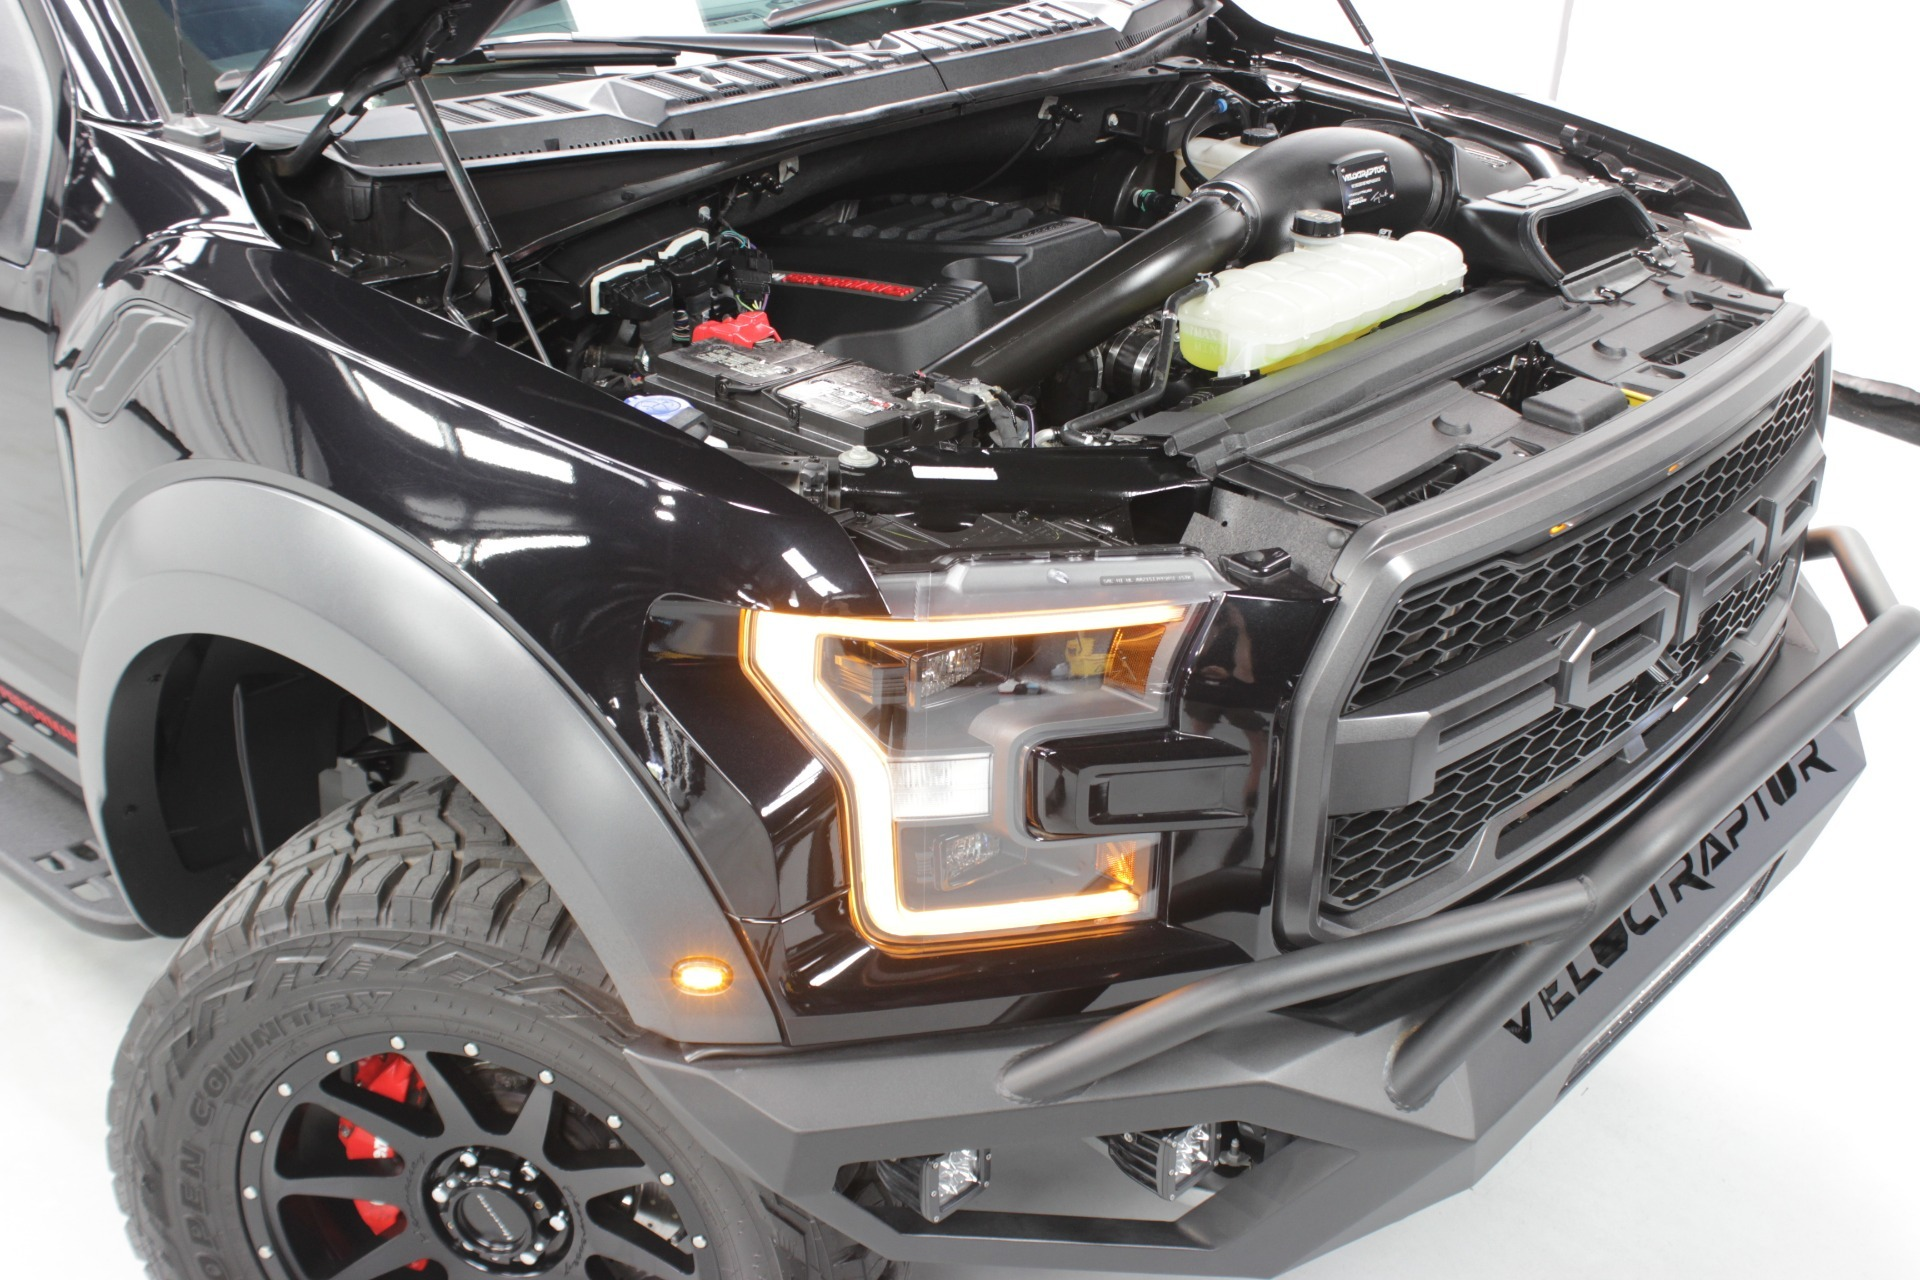 Used 2019 Ford F-150 RAPTOR 4x4 HENNESSY VELOCIRAPTOR VR600 UPGRADE (600HP) for sale $99,995 at Formula Imports in Charlotte NC 28227 41